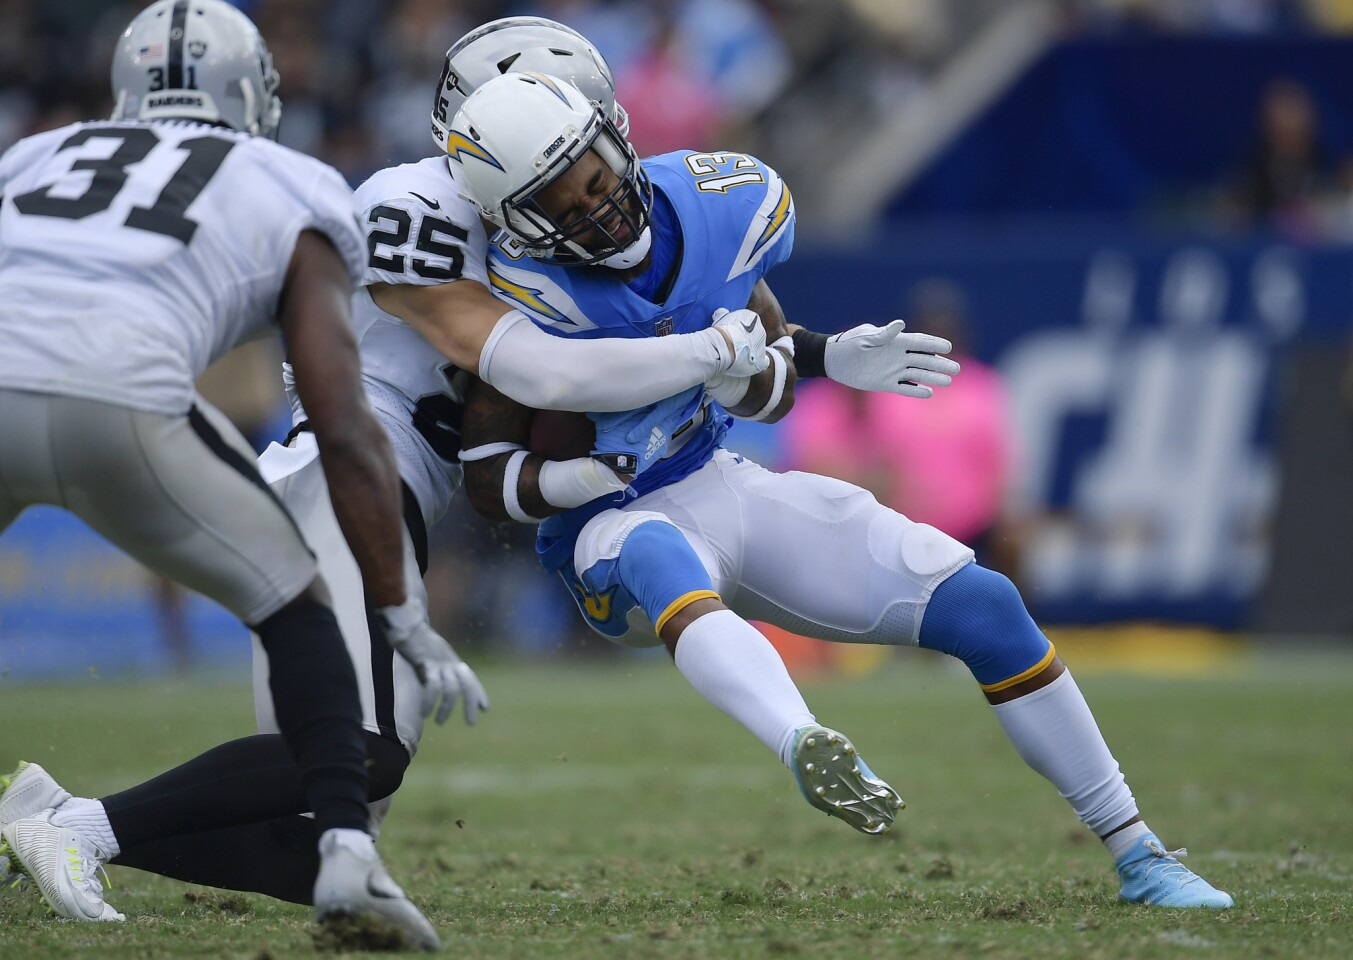 Los Angeles Chargers wide receiver Keenan Allen, center, is hit by Oakland Raiders defensive back Erik Harris during the second half of an NFL football game Sunday, Oct. 7, 2018, in Carson, Calif.